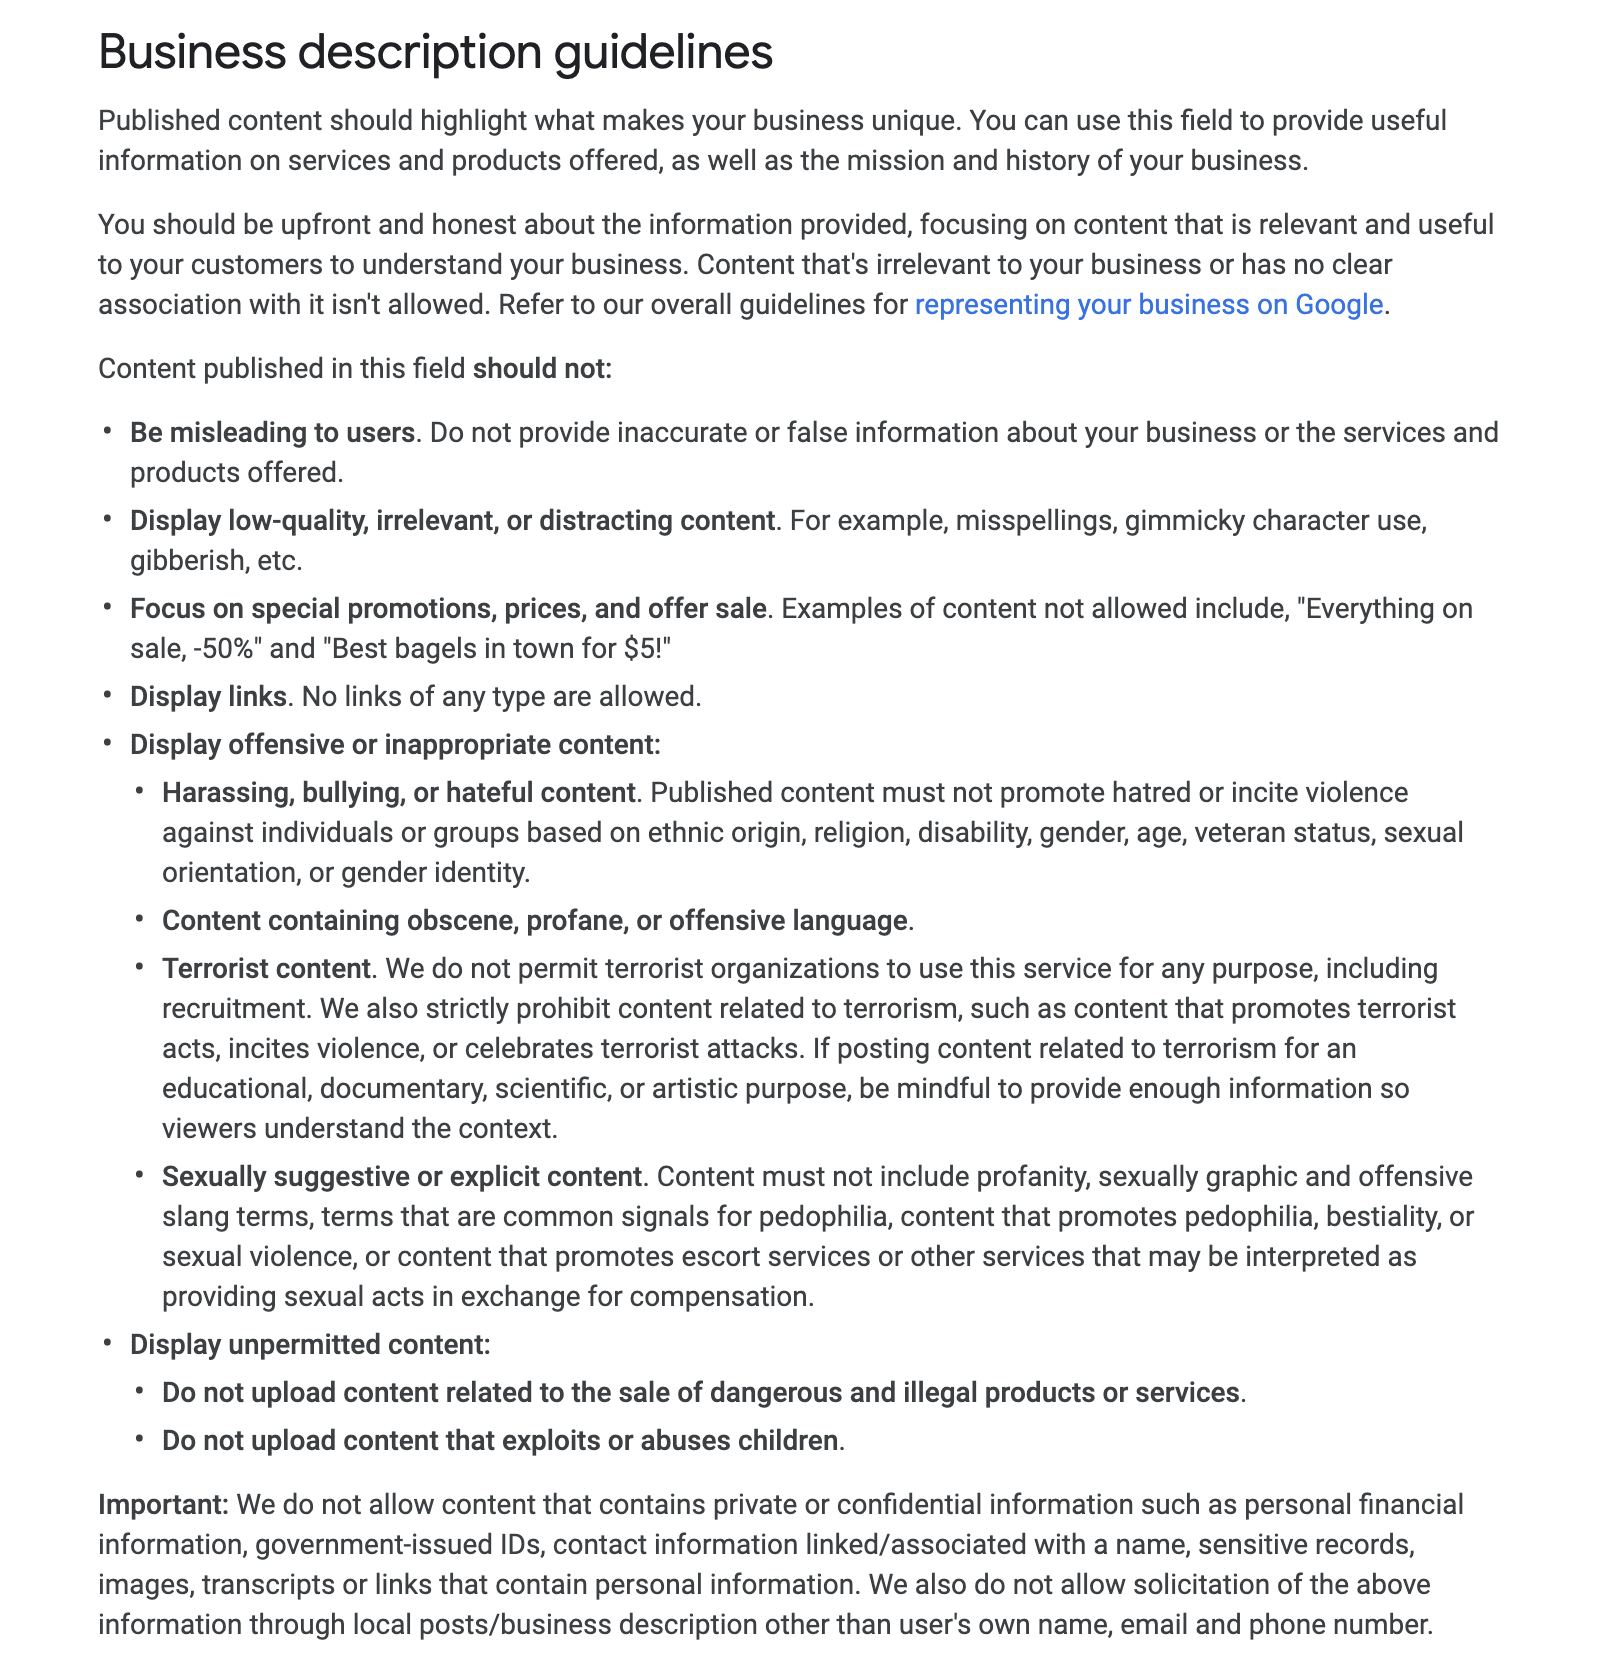 GMB description guidelines for businesses